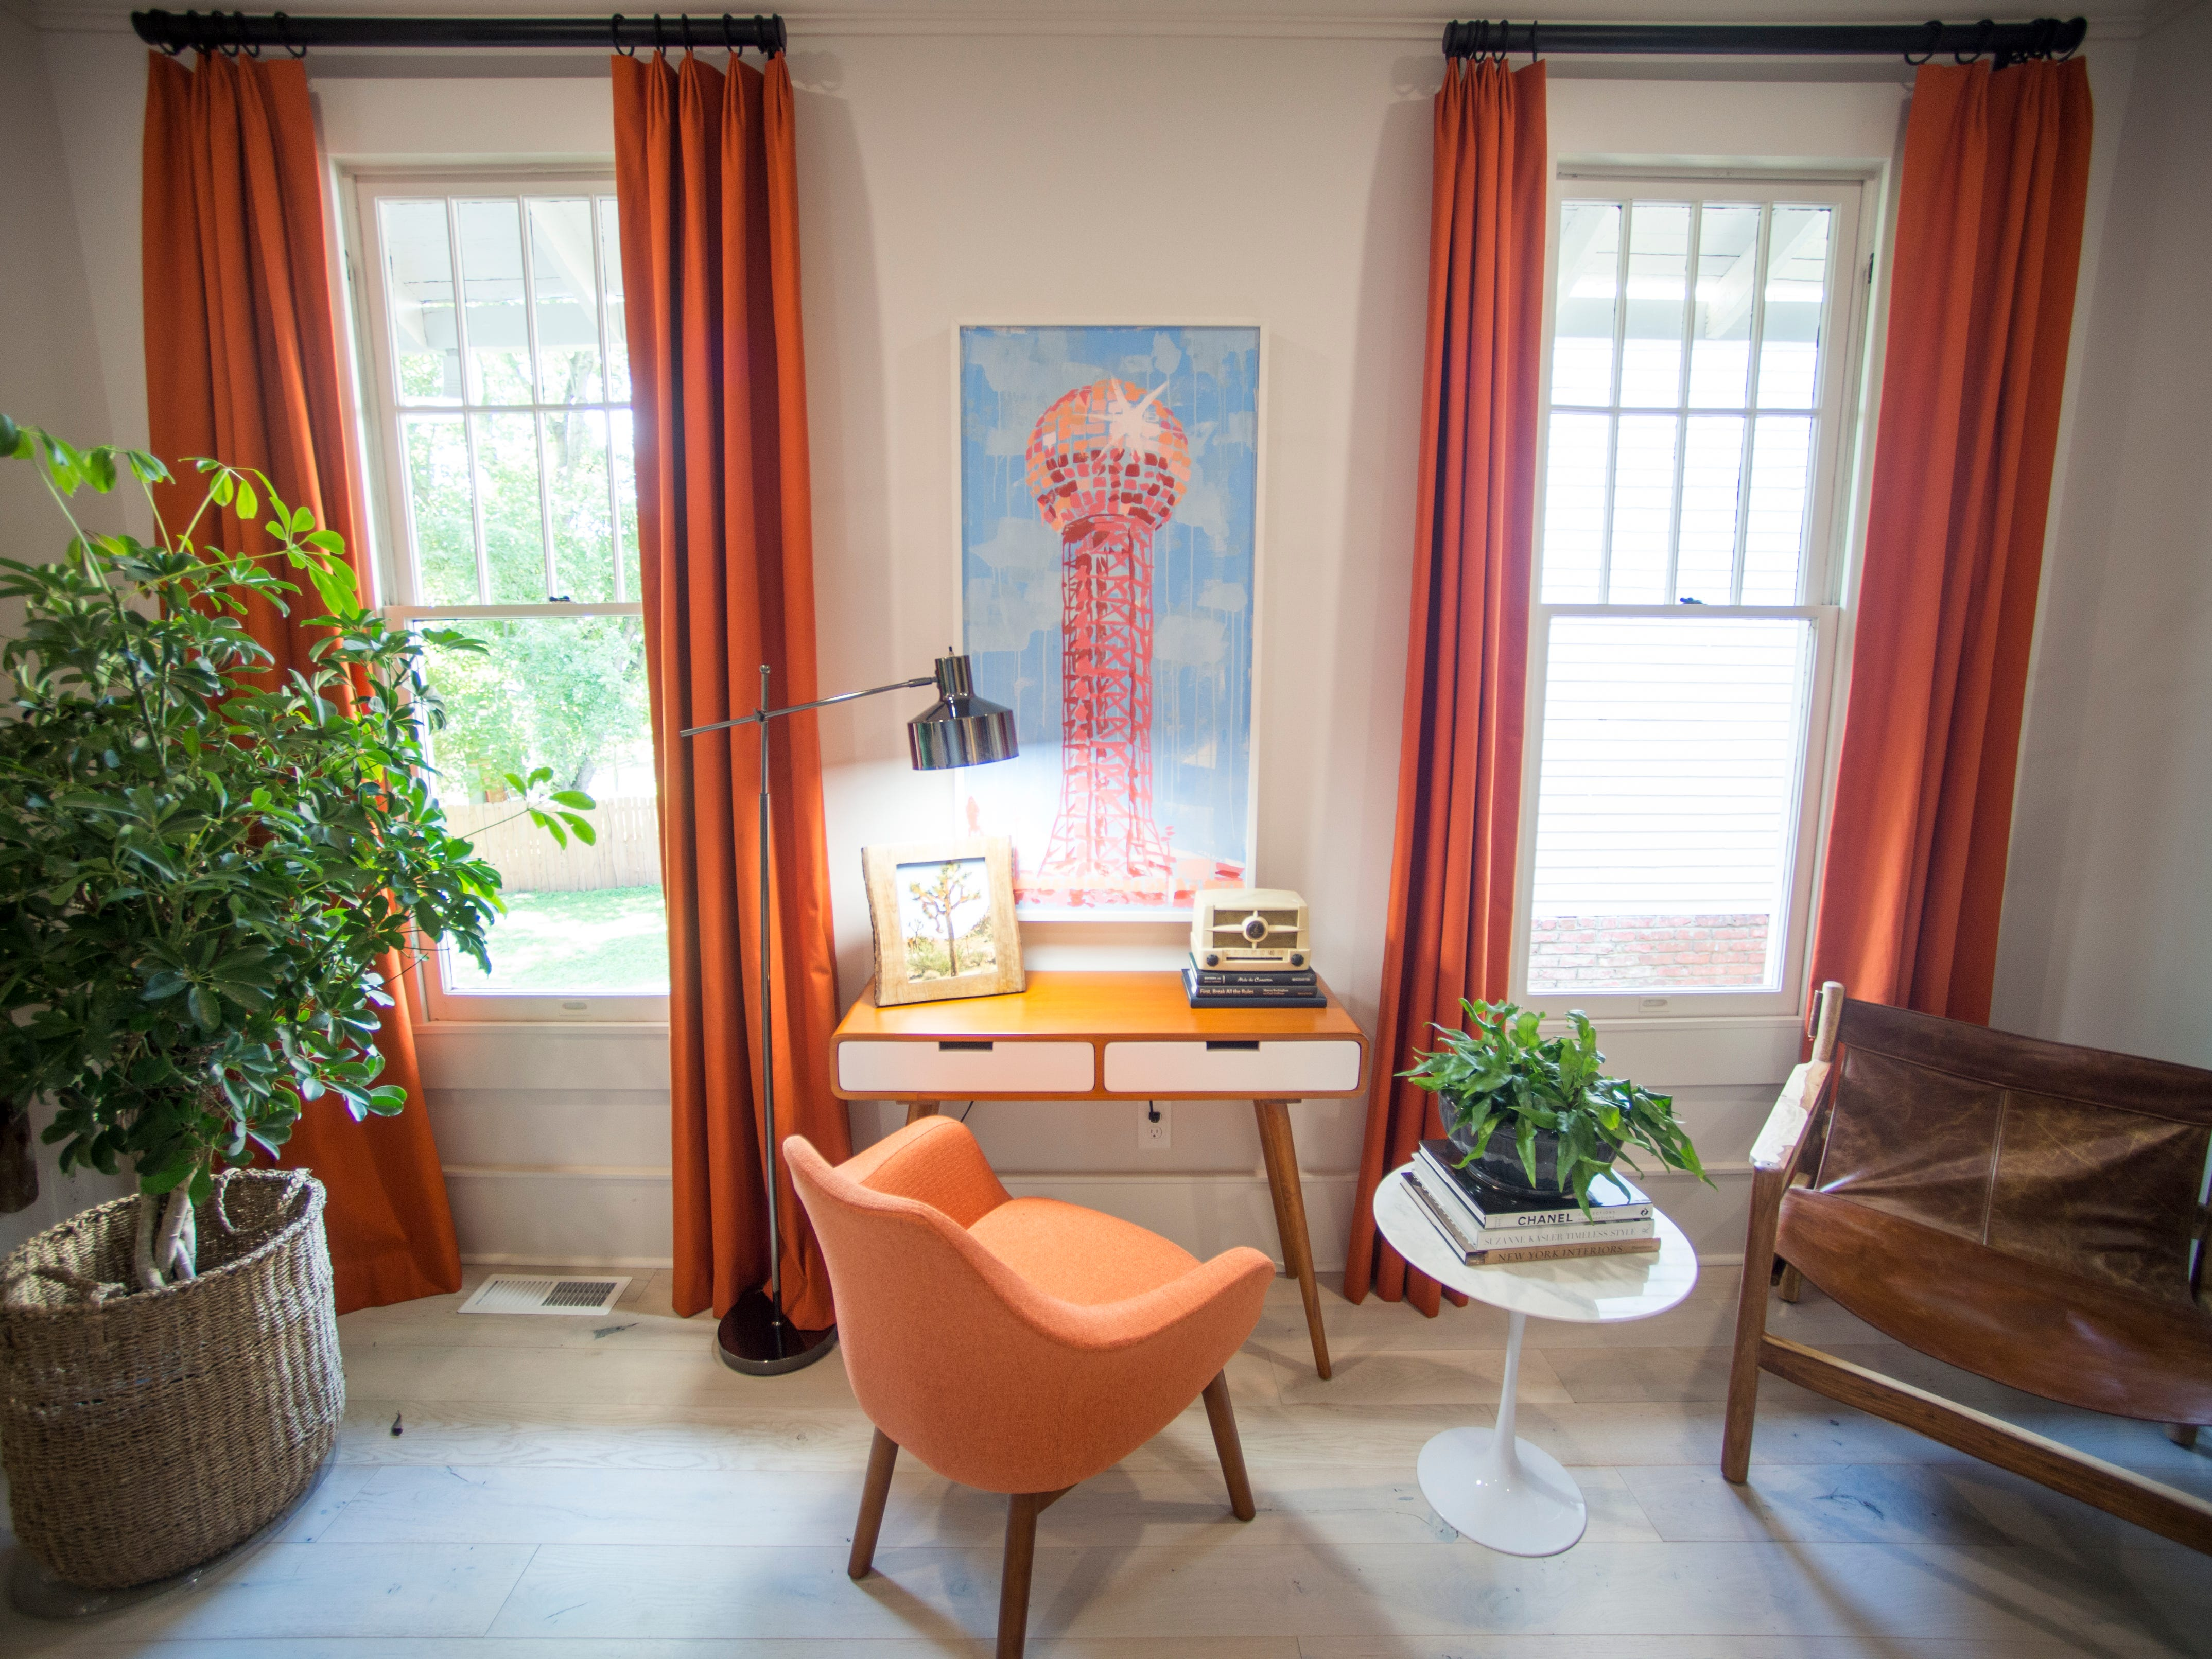 HGTV Urban Oasis Giveaway Home For Sale At $465,000